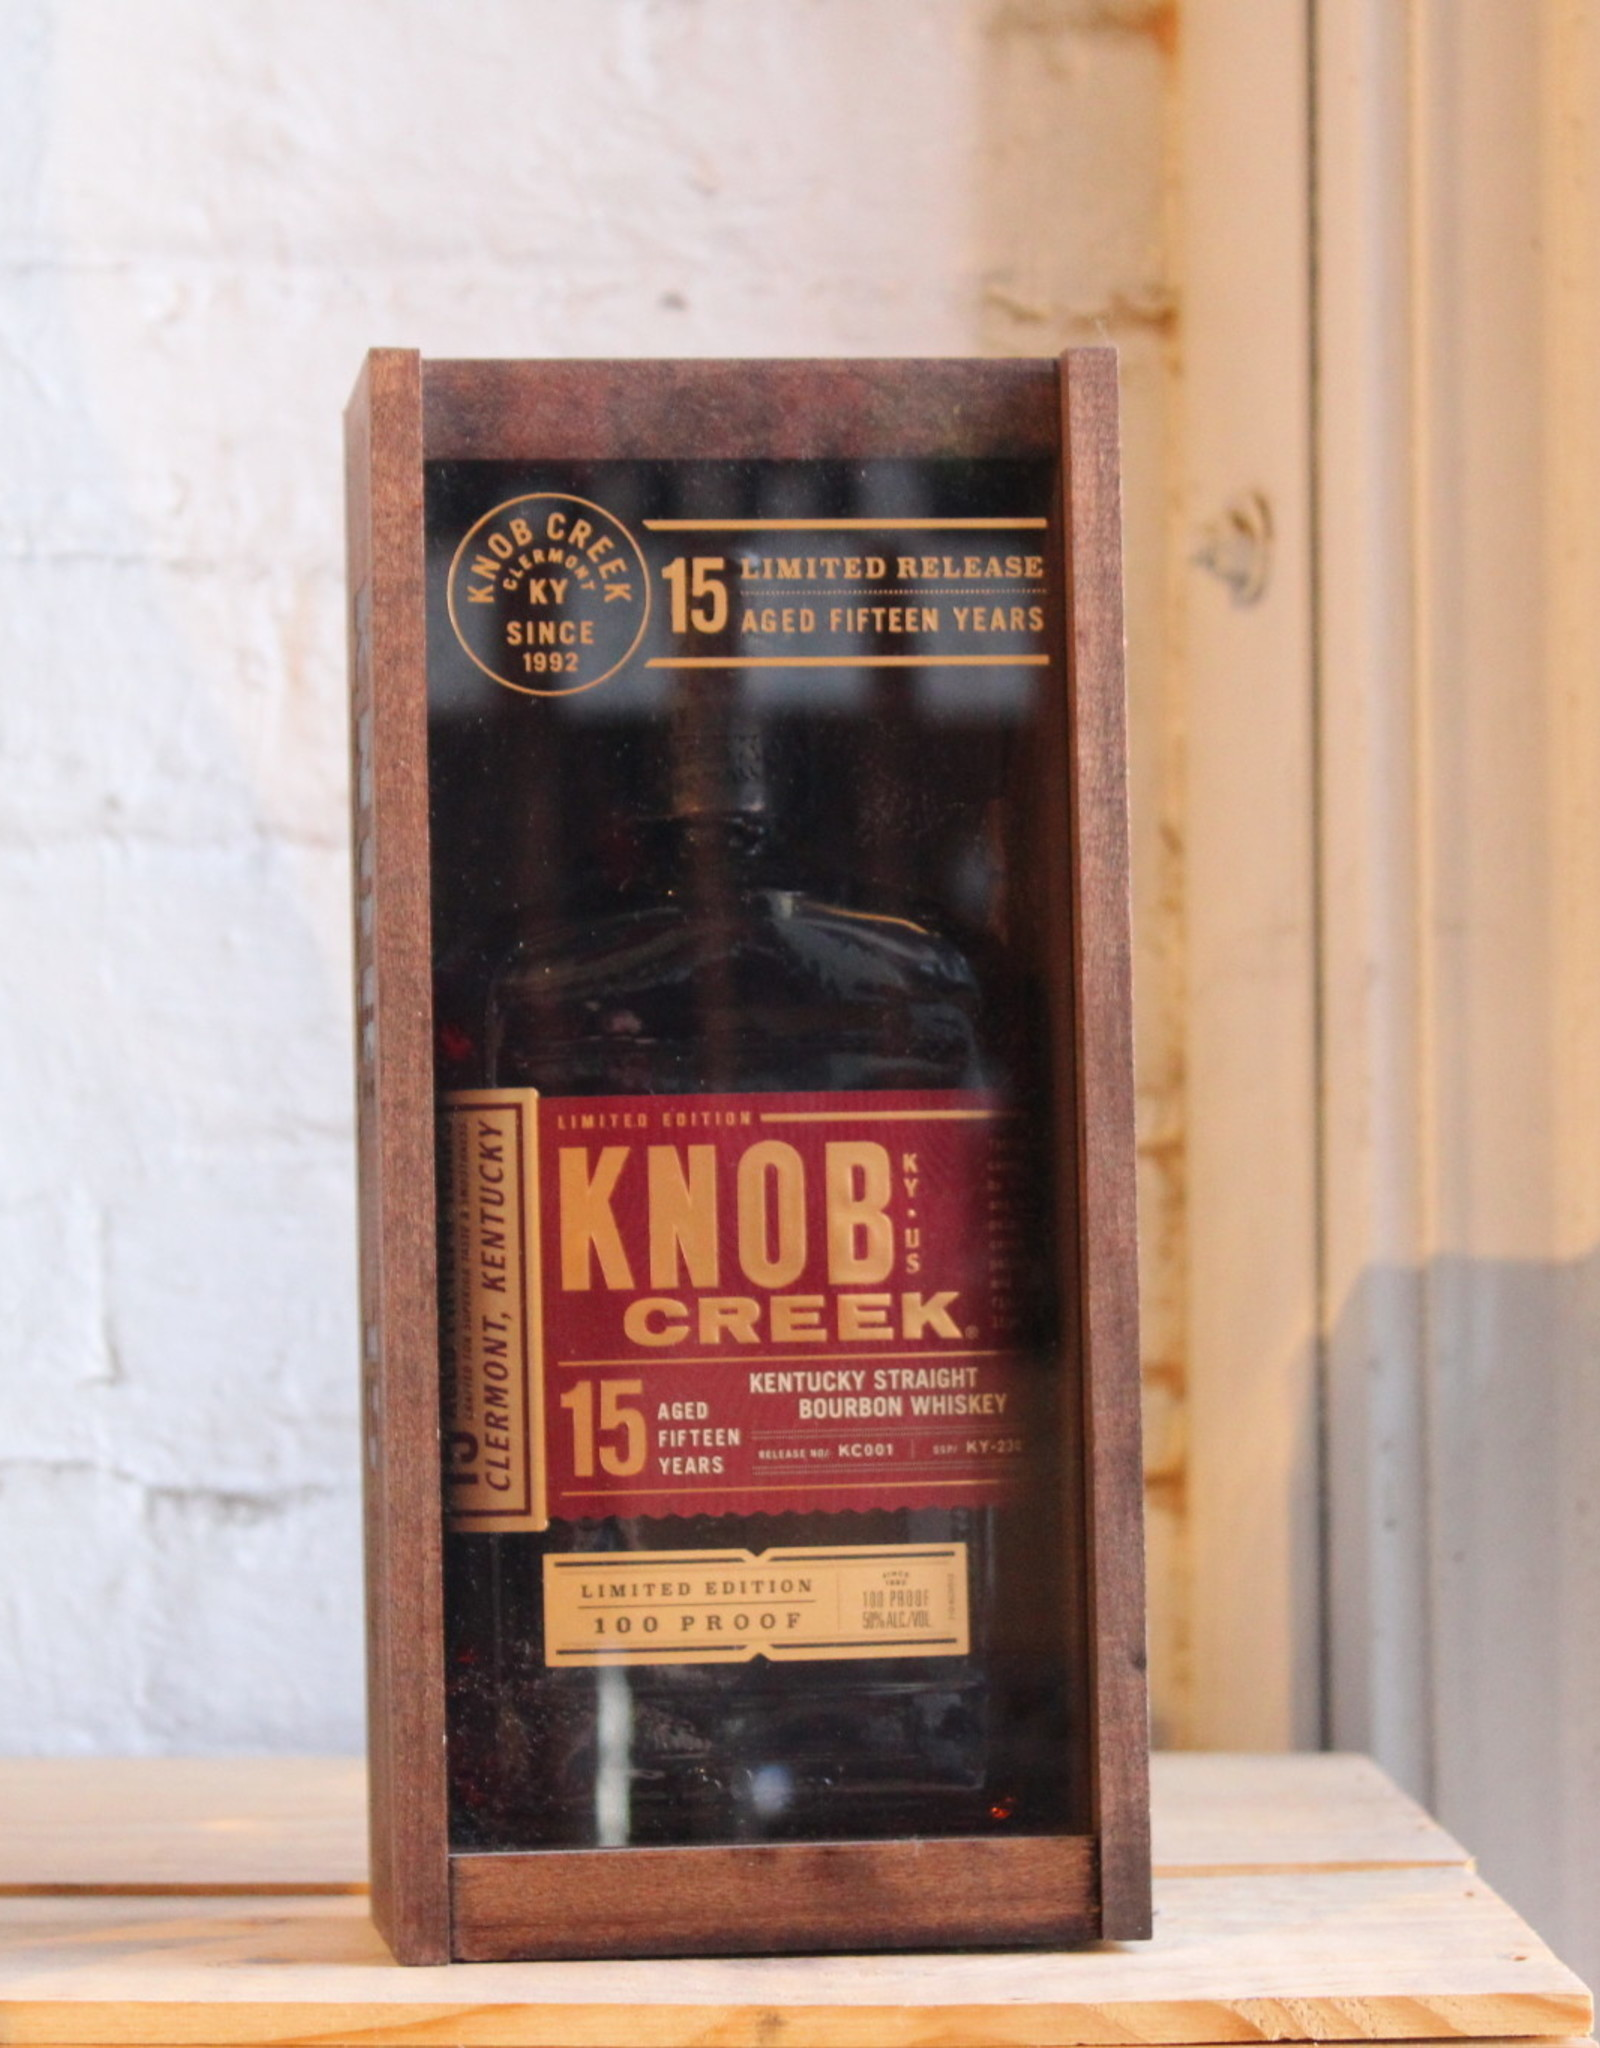 Knob Creek 15yr Ltd Edition 100 proof Straight Bourbon Whiskey - Clermont, Kentucky (750ml)